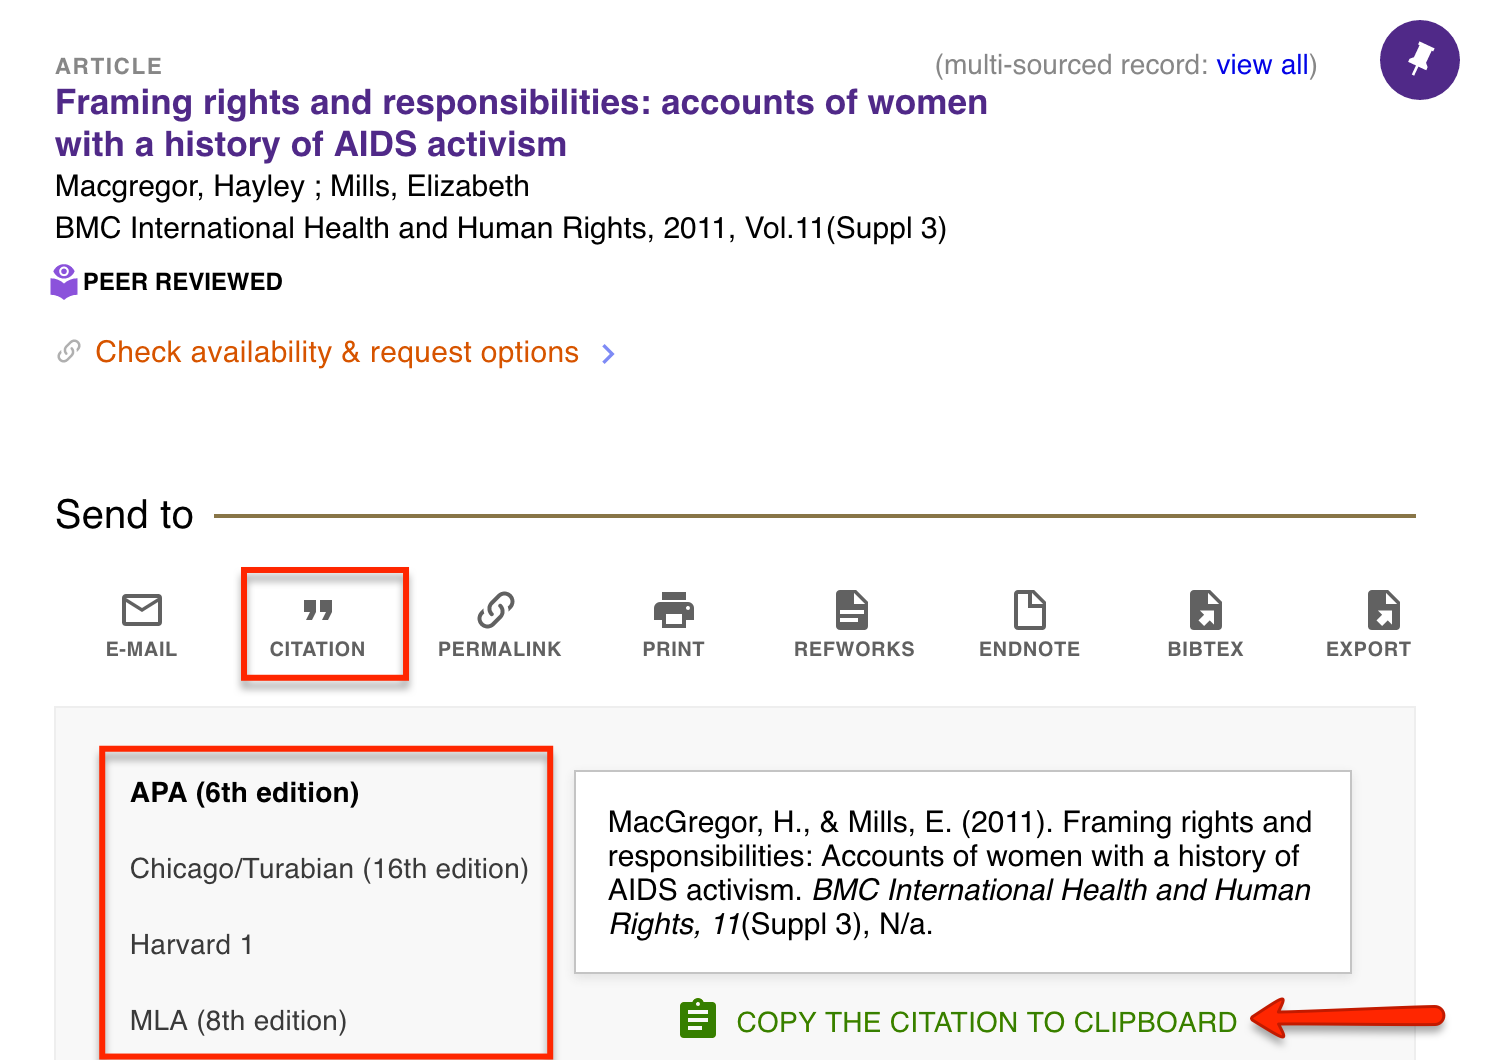 View of article in UW Libraries catalog showing how to use the citation icon to copy a citation to clipboard. Citation options shows are APA 6th edition, Chicago/Turabian 16th edition, Harvard 1 and MLA 8th edition